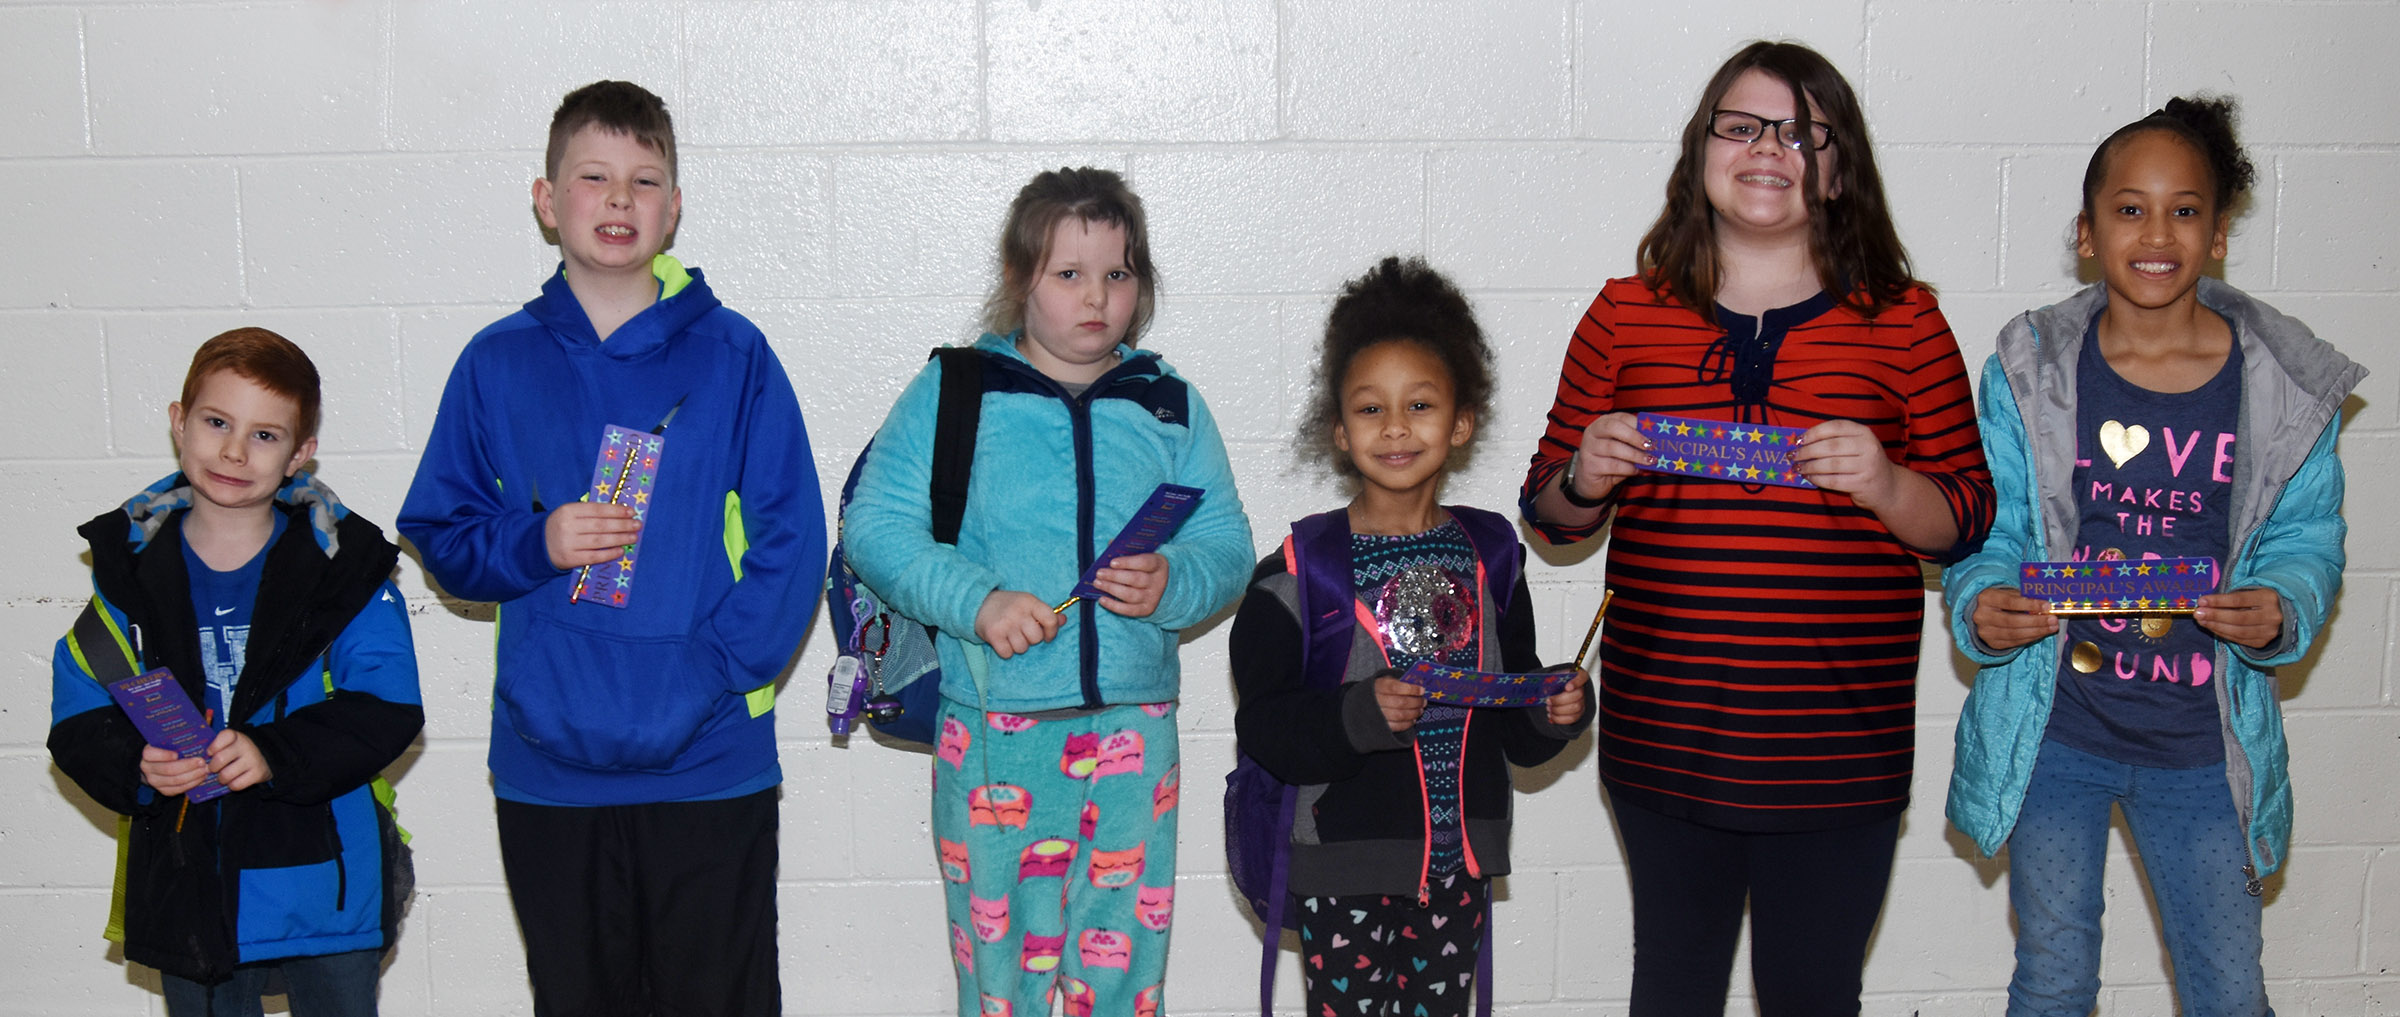 From left are kindergartener Kennon Dotson, fourth-grader Lucas Gribbins, second-grader Kierra Maupin, first-grader Elyzabeth Fisher, fifth-grader Keely Dicken and third-grader Yazlyn Sutton.